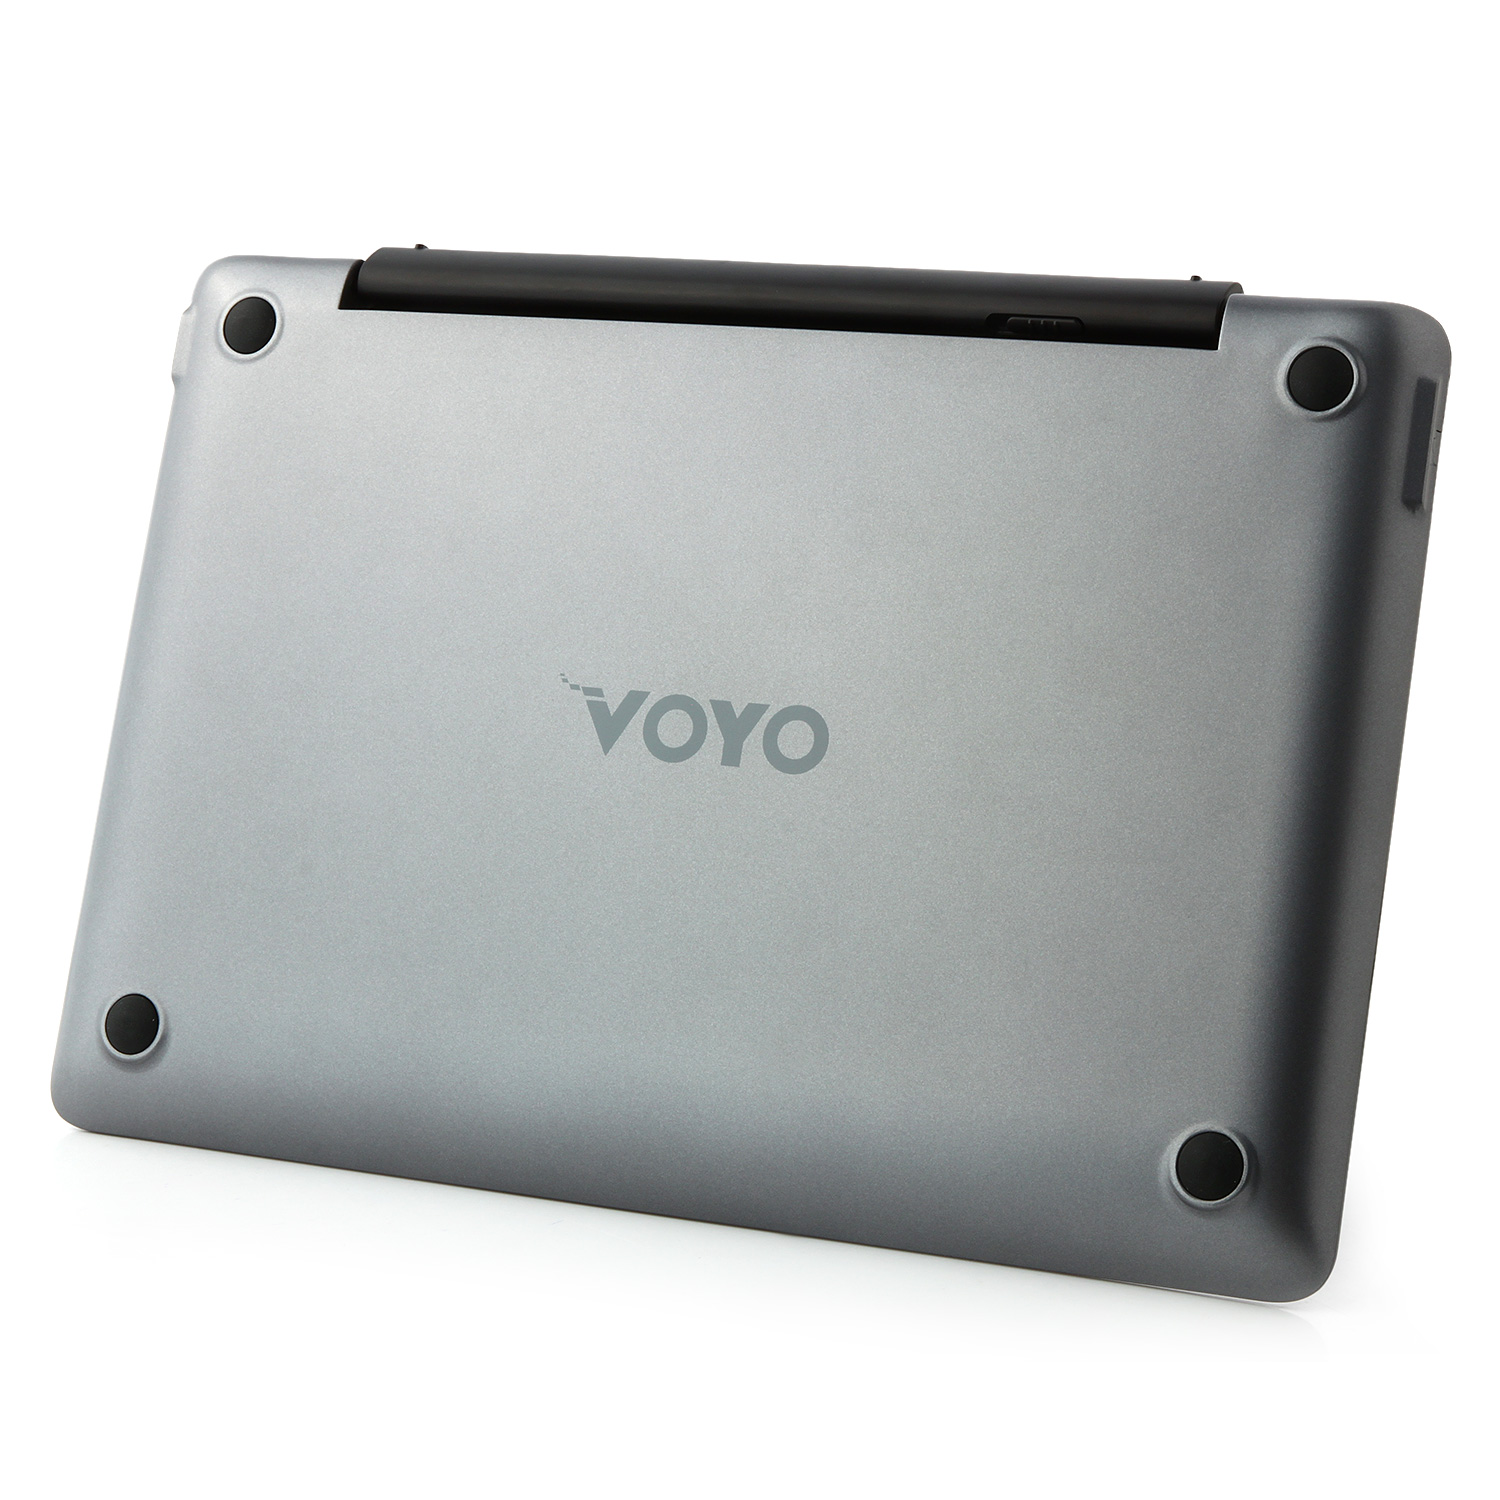 "VOYO A6 Tablet PC Win8 OS Intel Z3735D 10.1"" IPS Screen 2GB 64GB Blue -FREE KEYBOARD"